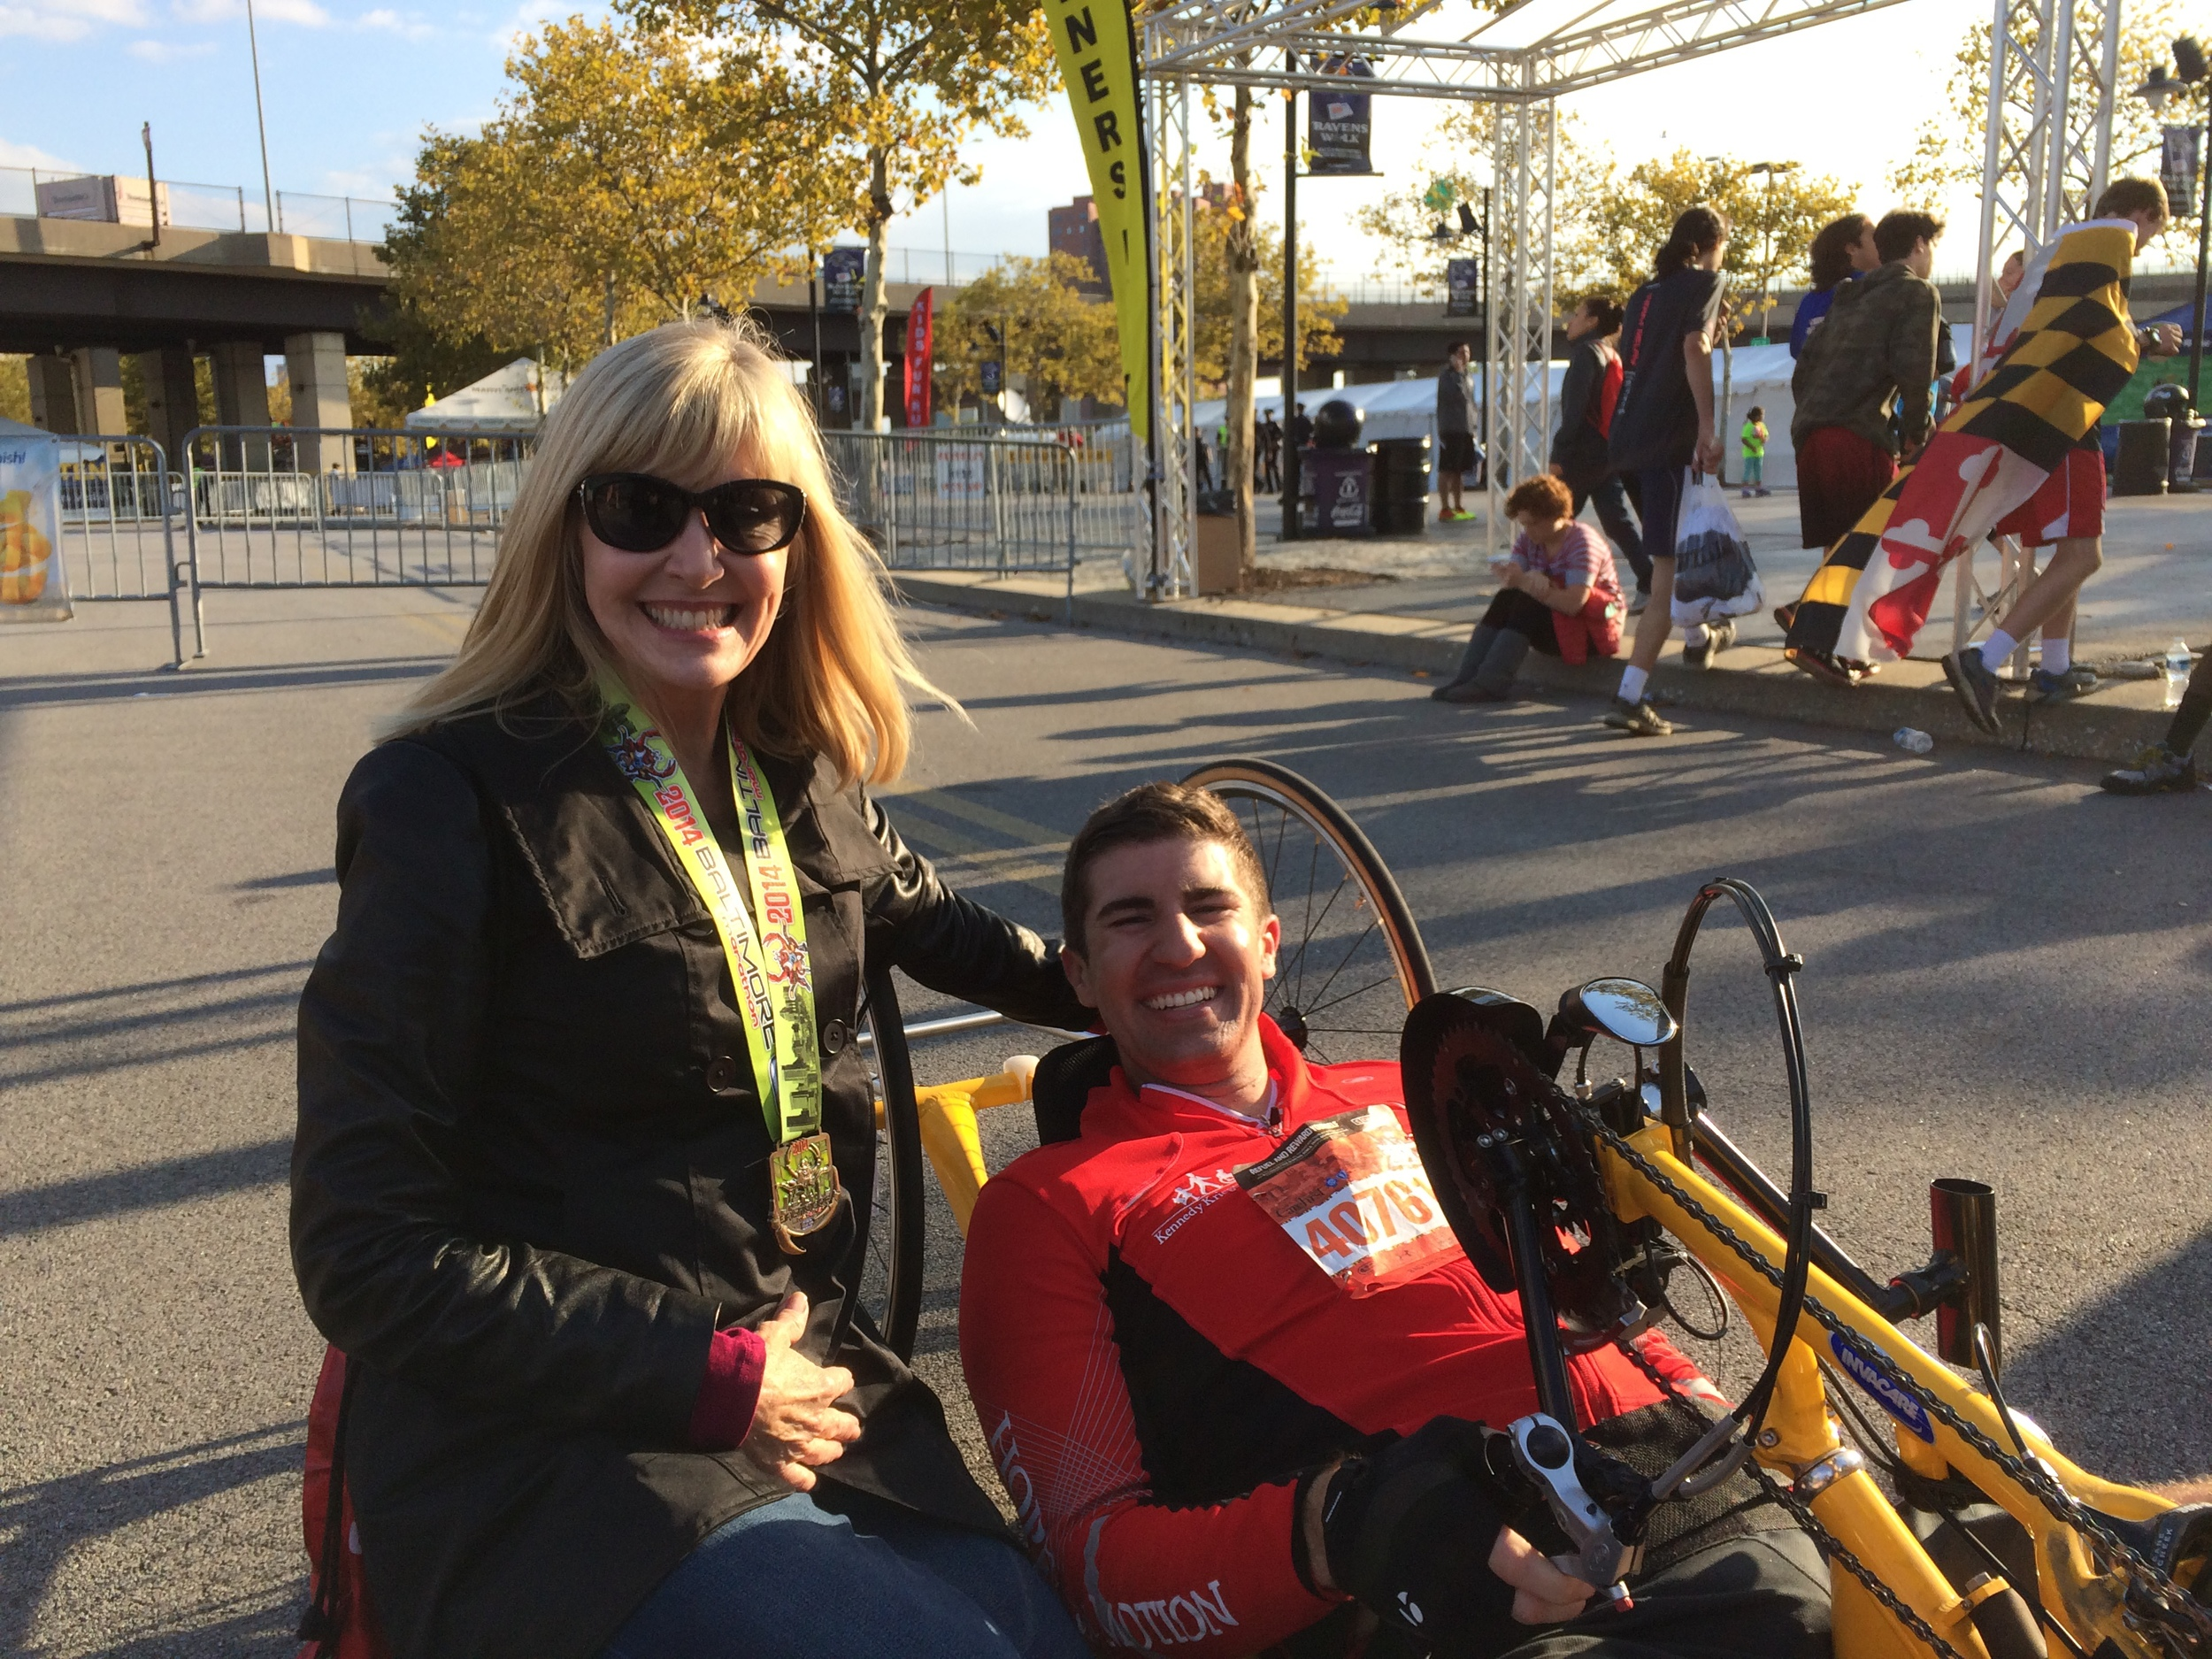 Mike and his mom at the Baltimore Running Festival, October 18, 2014, where he won 3rd place in the Handcycle division.